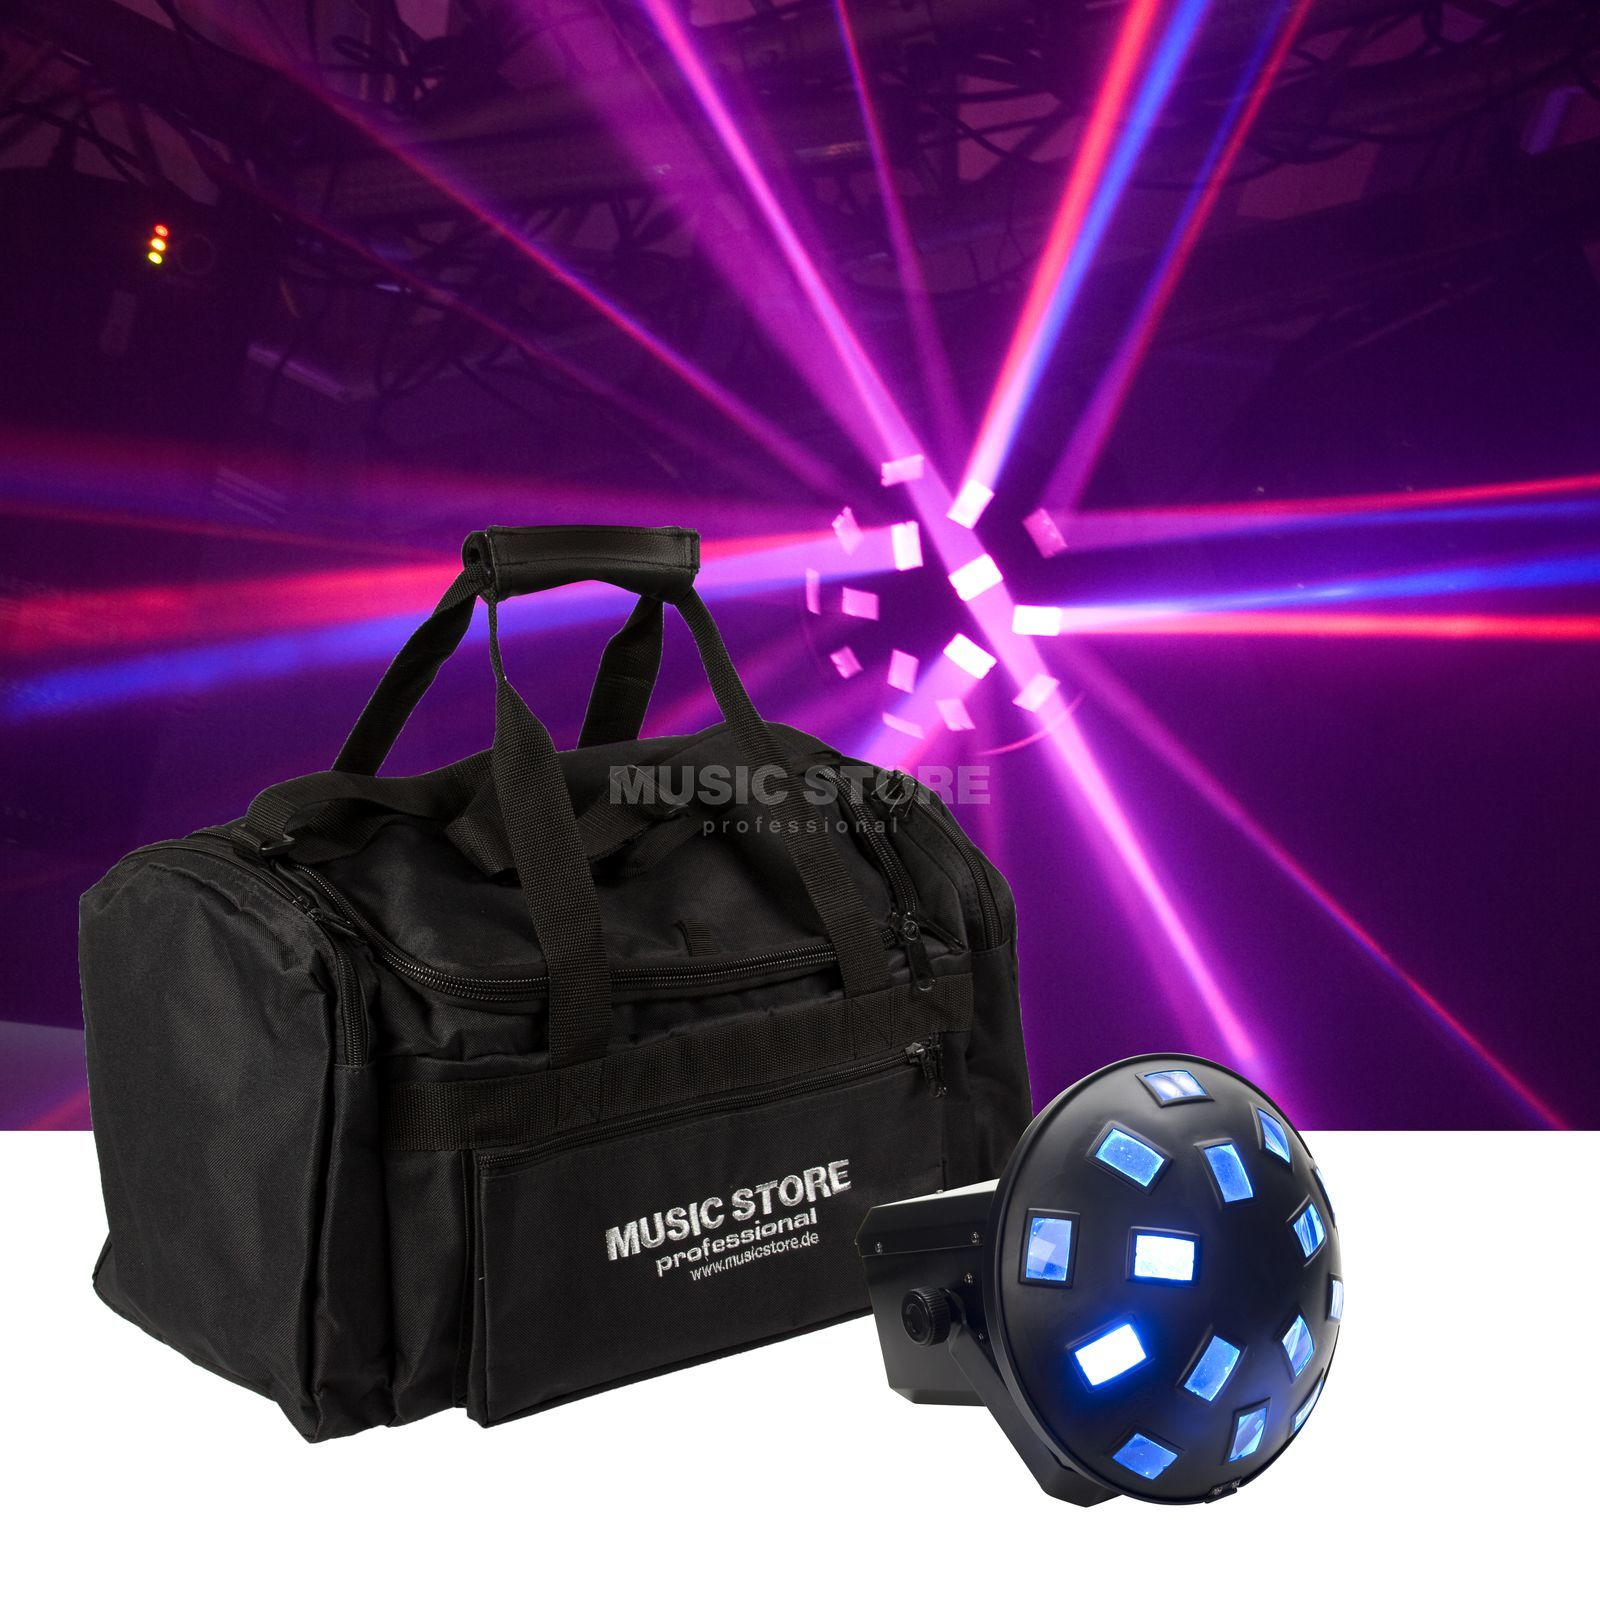 lightmaXX Small Mushroom LED + Bag - Set Product Image